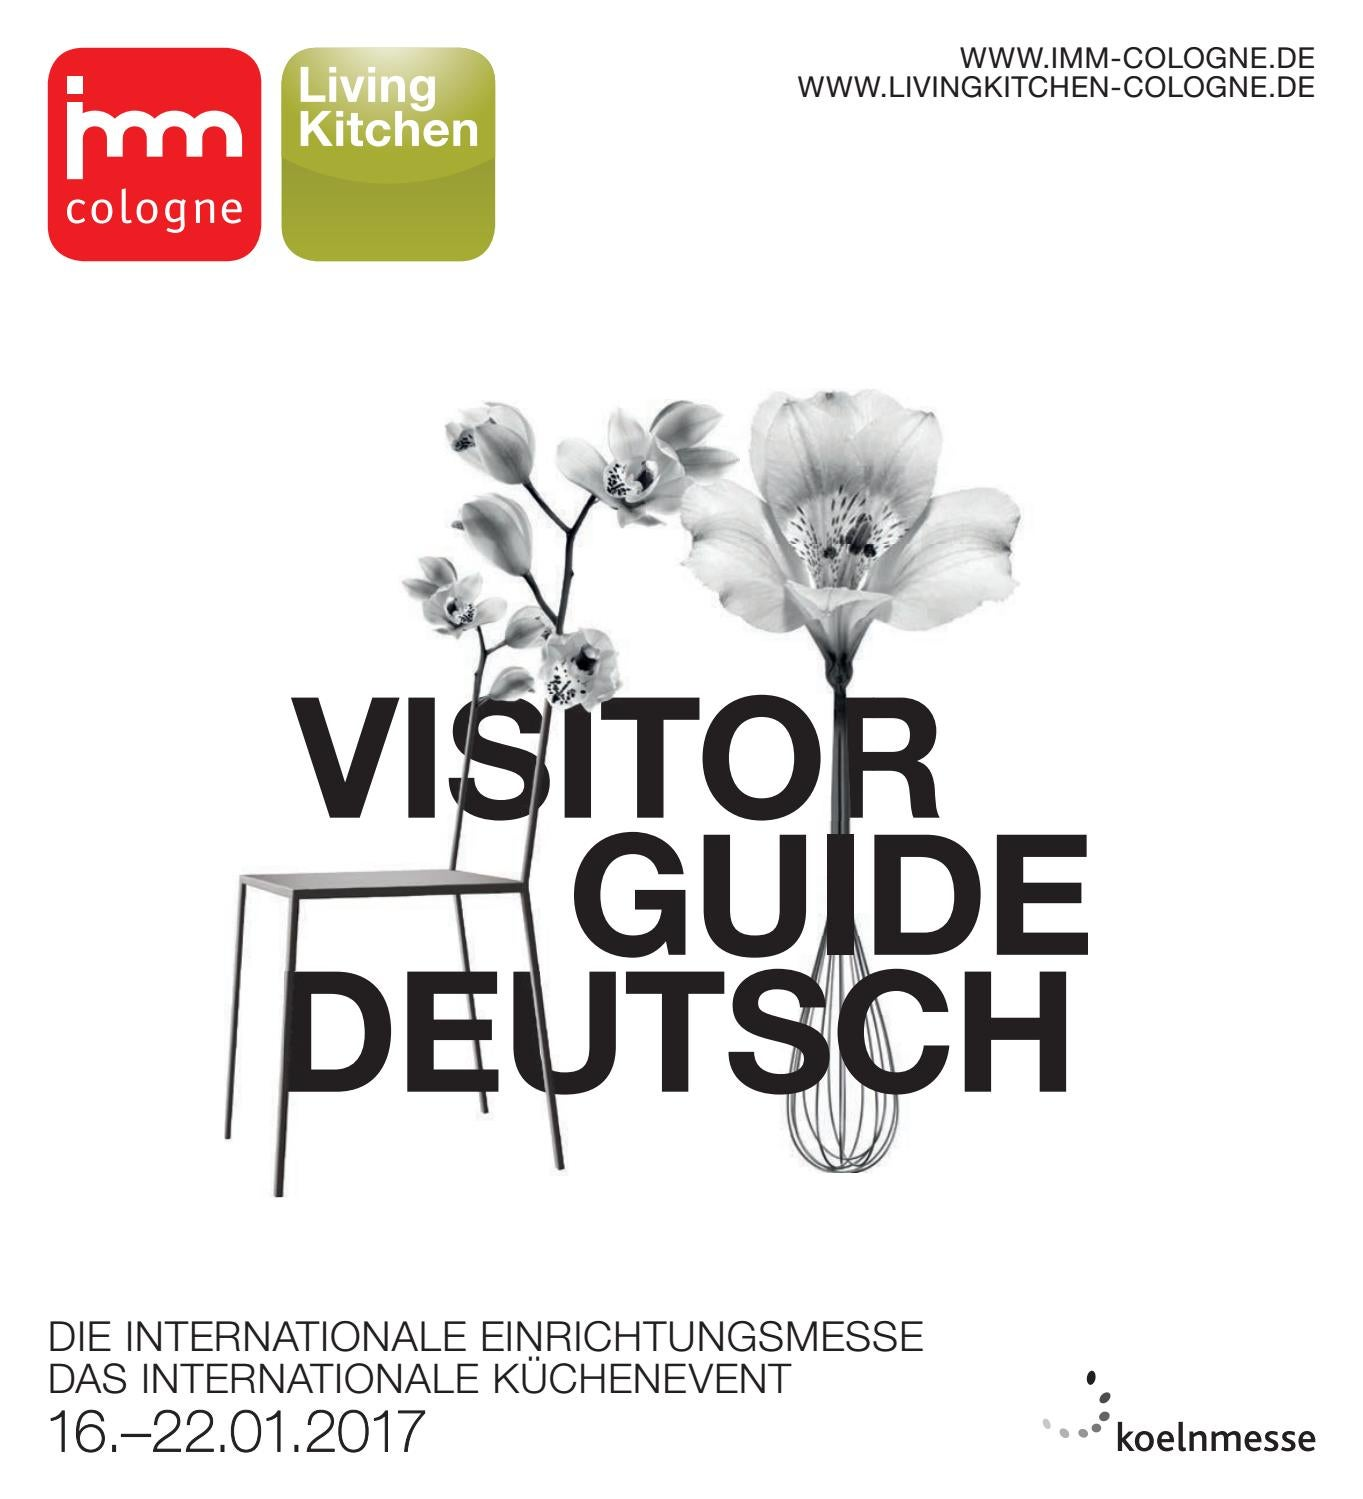 Imm livingkitchen 2017 visitor guide de 150dpi by Koelnmesse GmbH ...